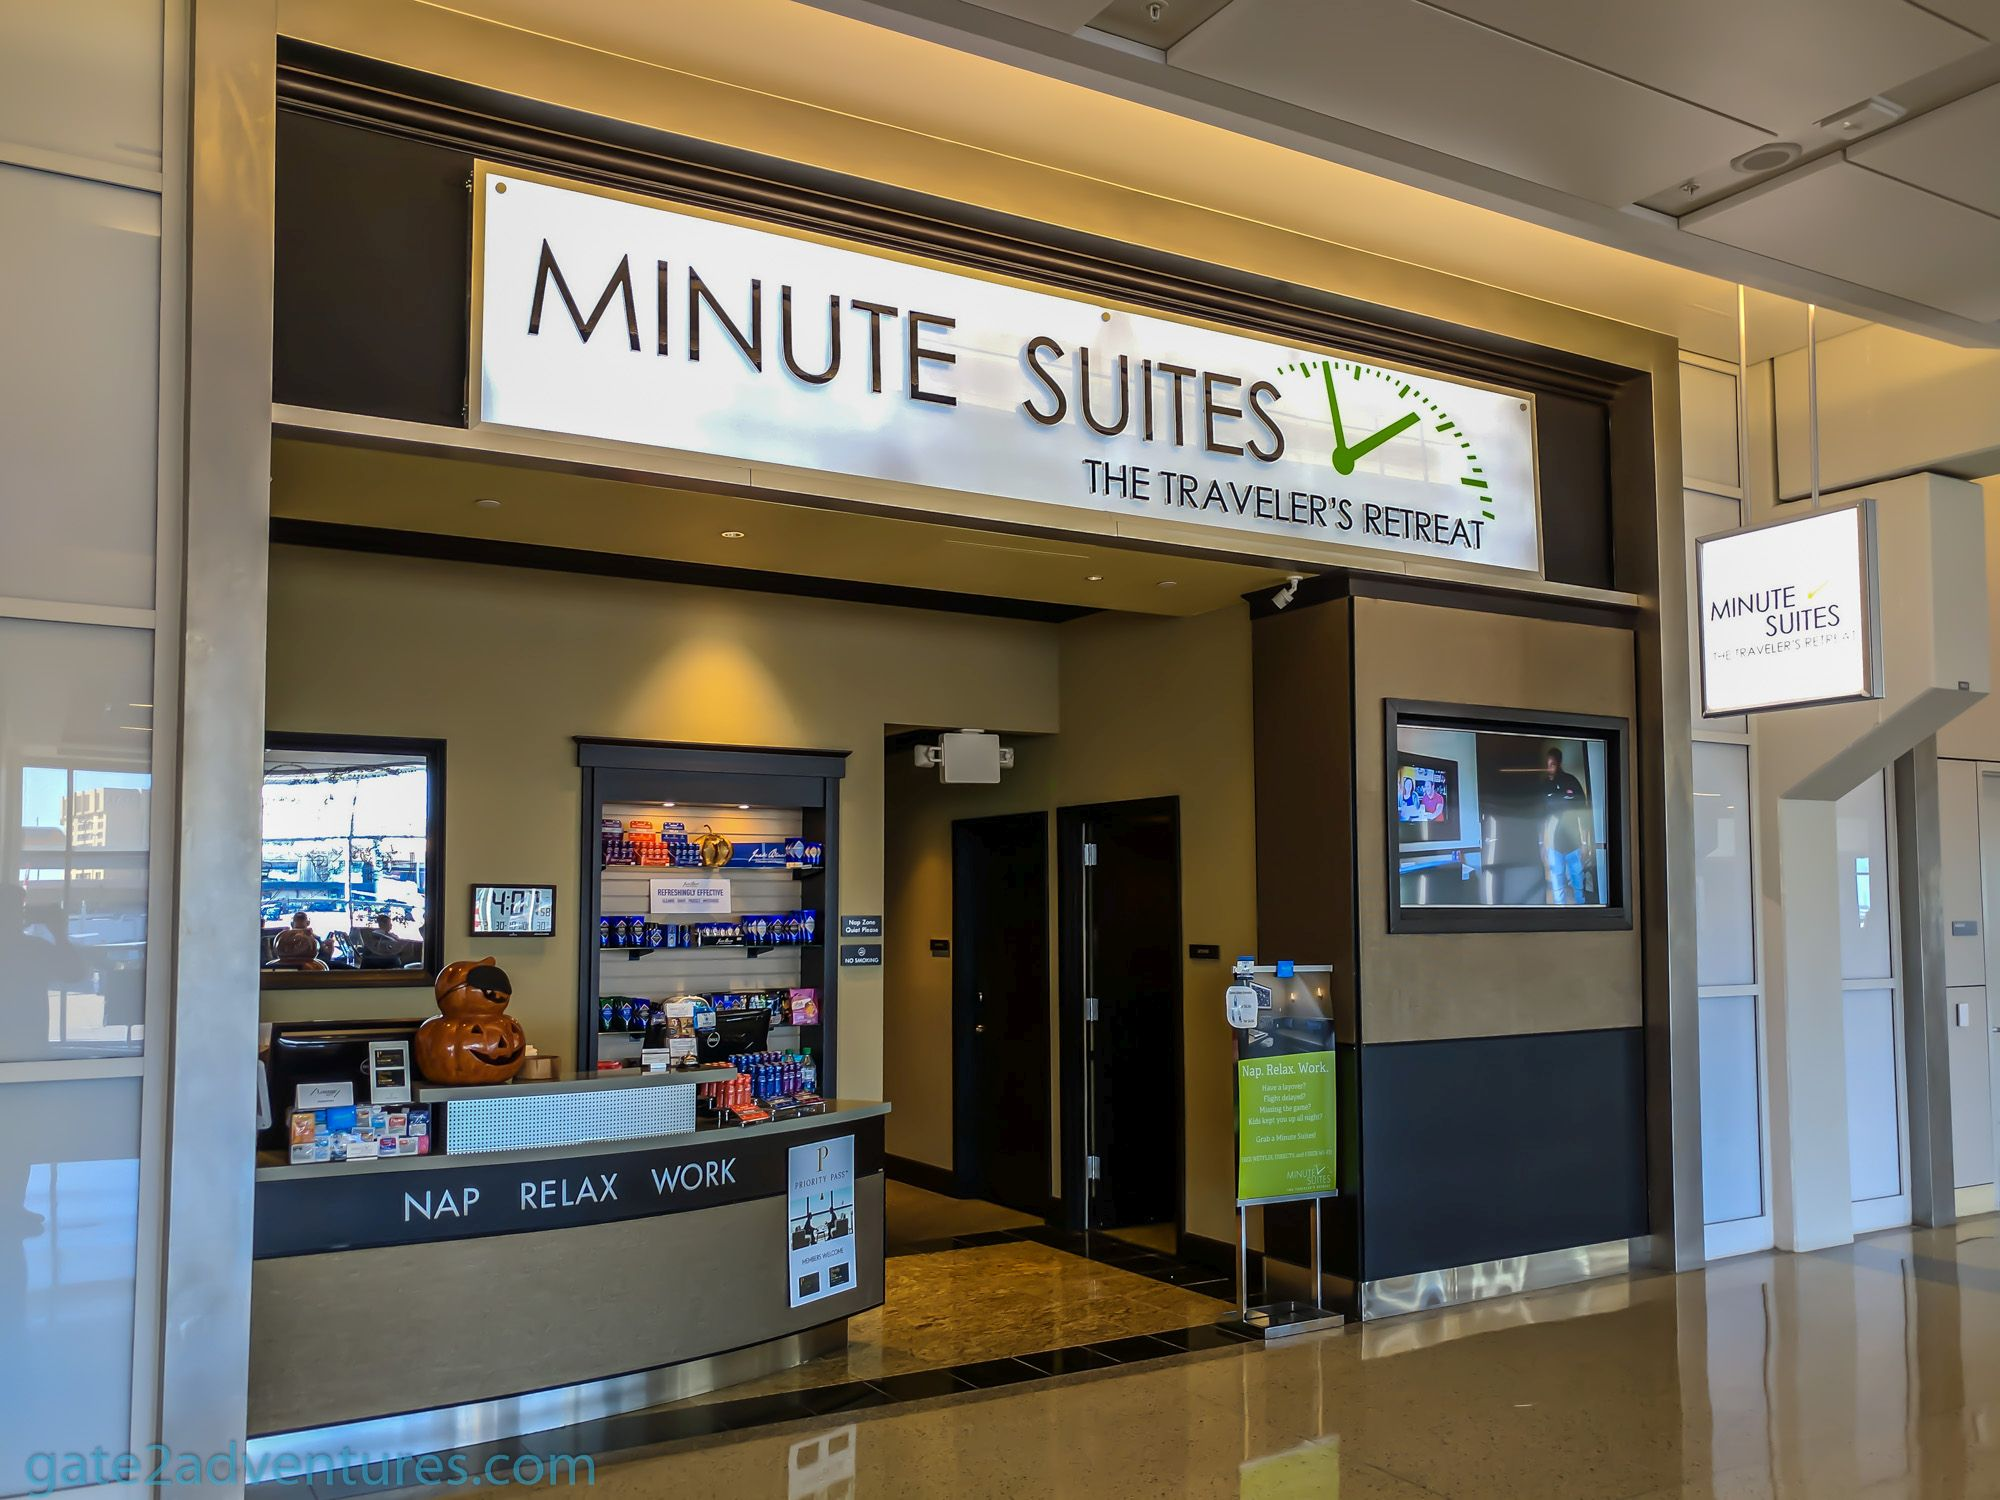 Lounge Review: Minute Suites at Dallas/Fort Worth (DFW) Terminal A